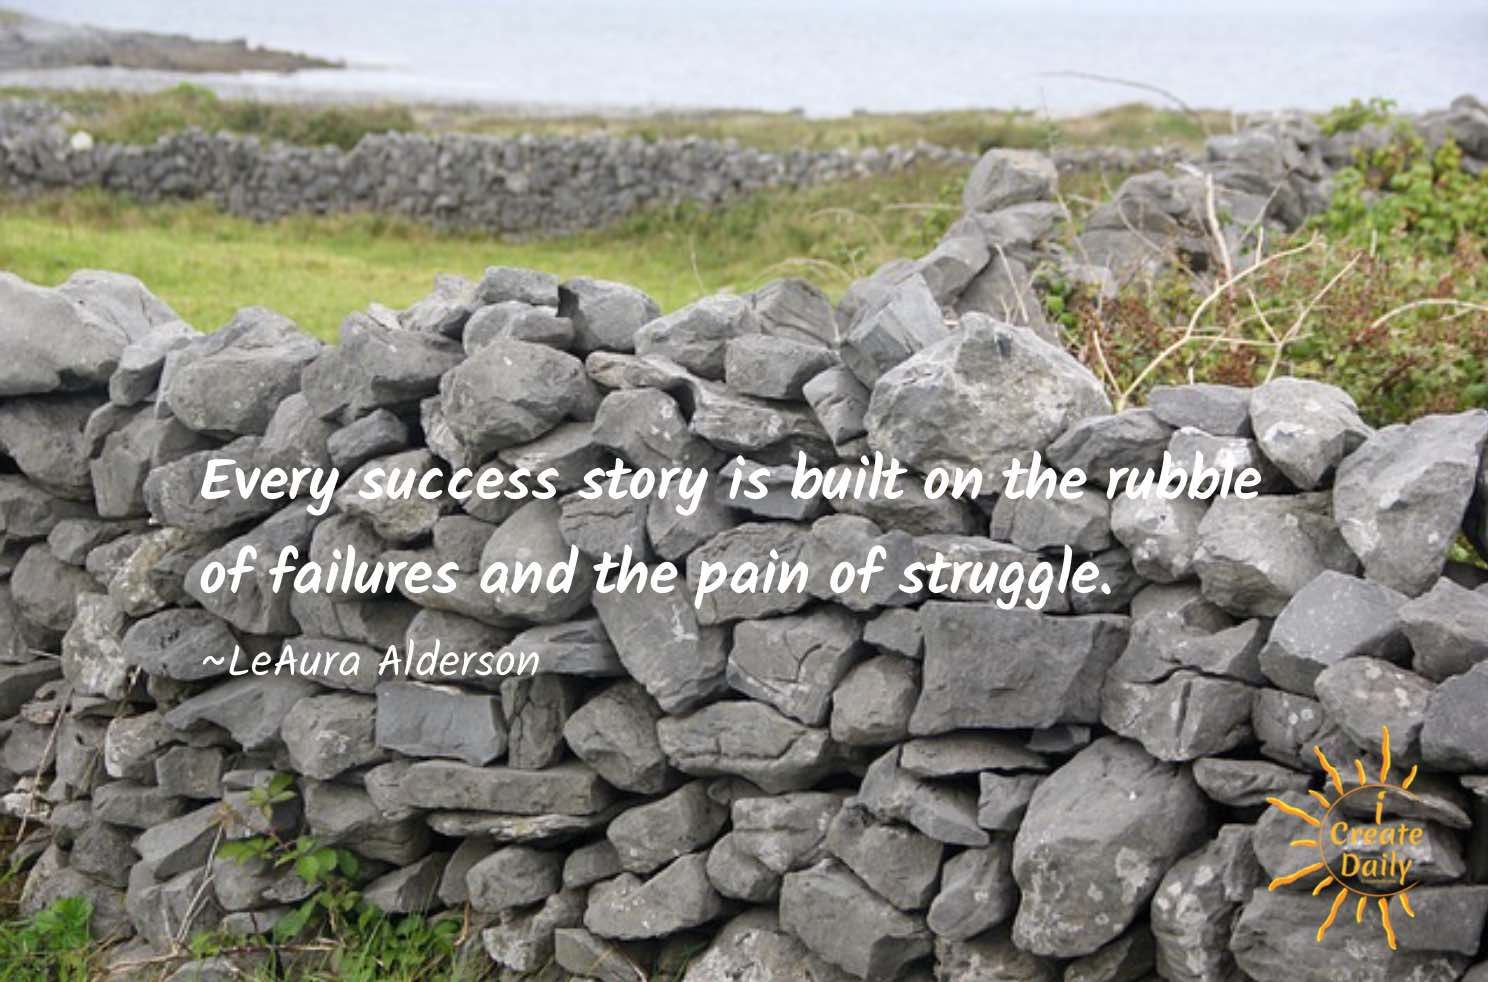 Every success story is built on the rubble of failures and the pain of struggle. ~LeAura Alderson, iCreateDaily.com® #SuccessQuote #FailureQuote #Creators #iCreateDaily #PersistenceWearsDownResistance